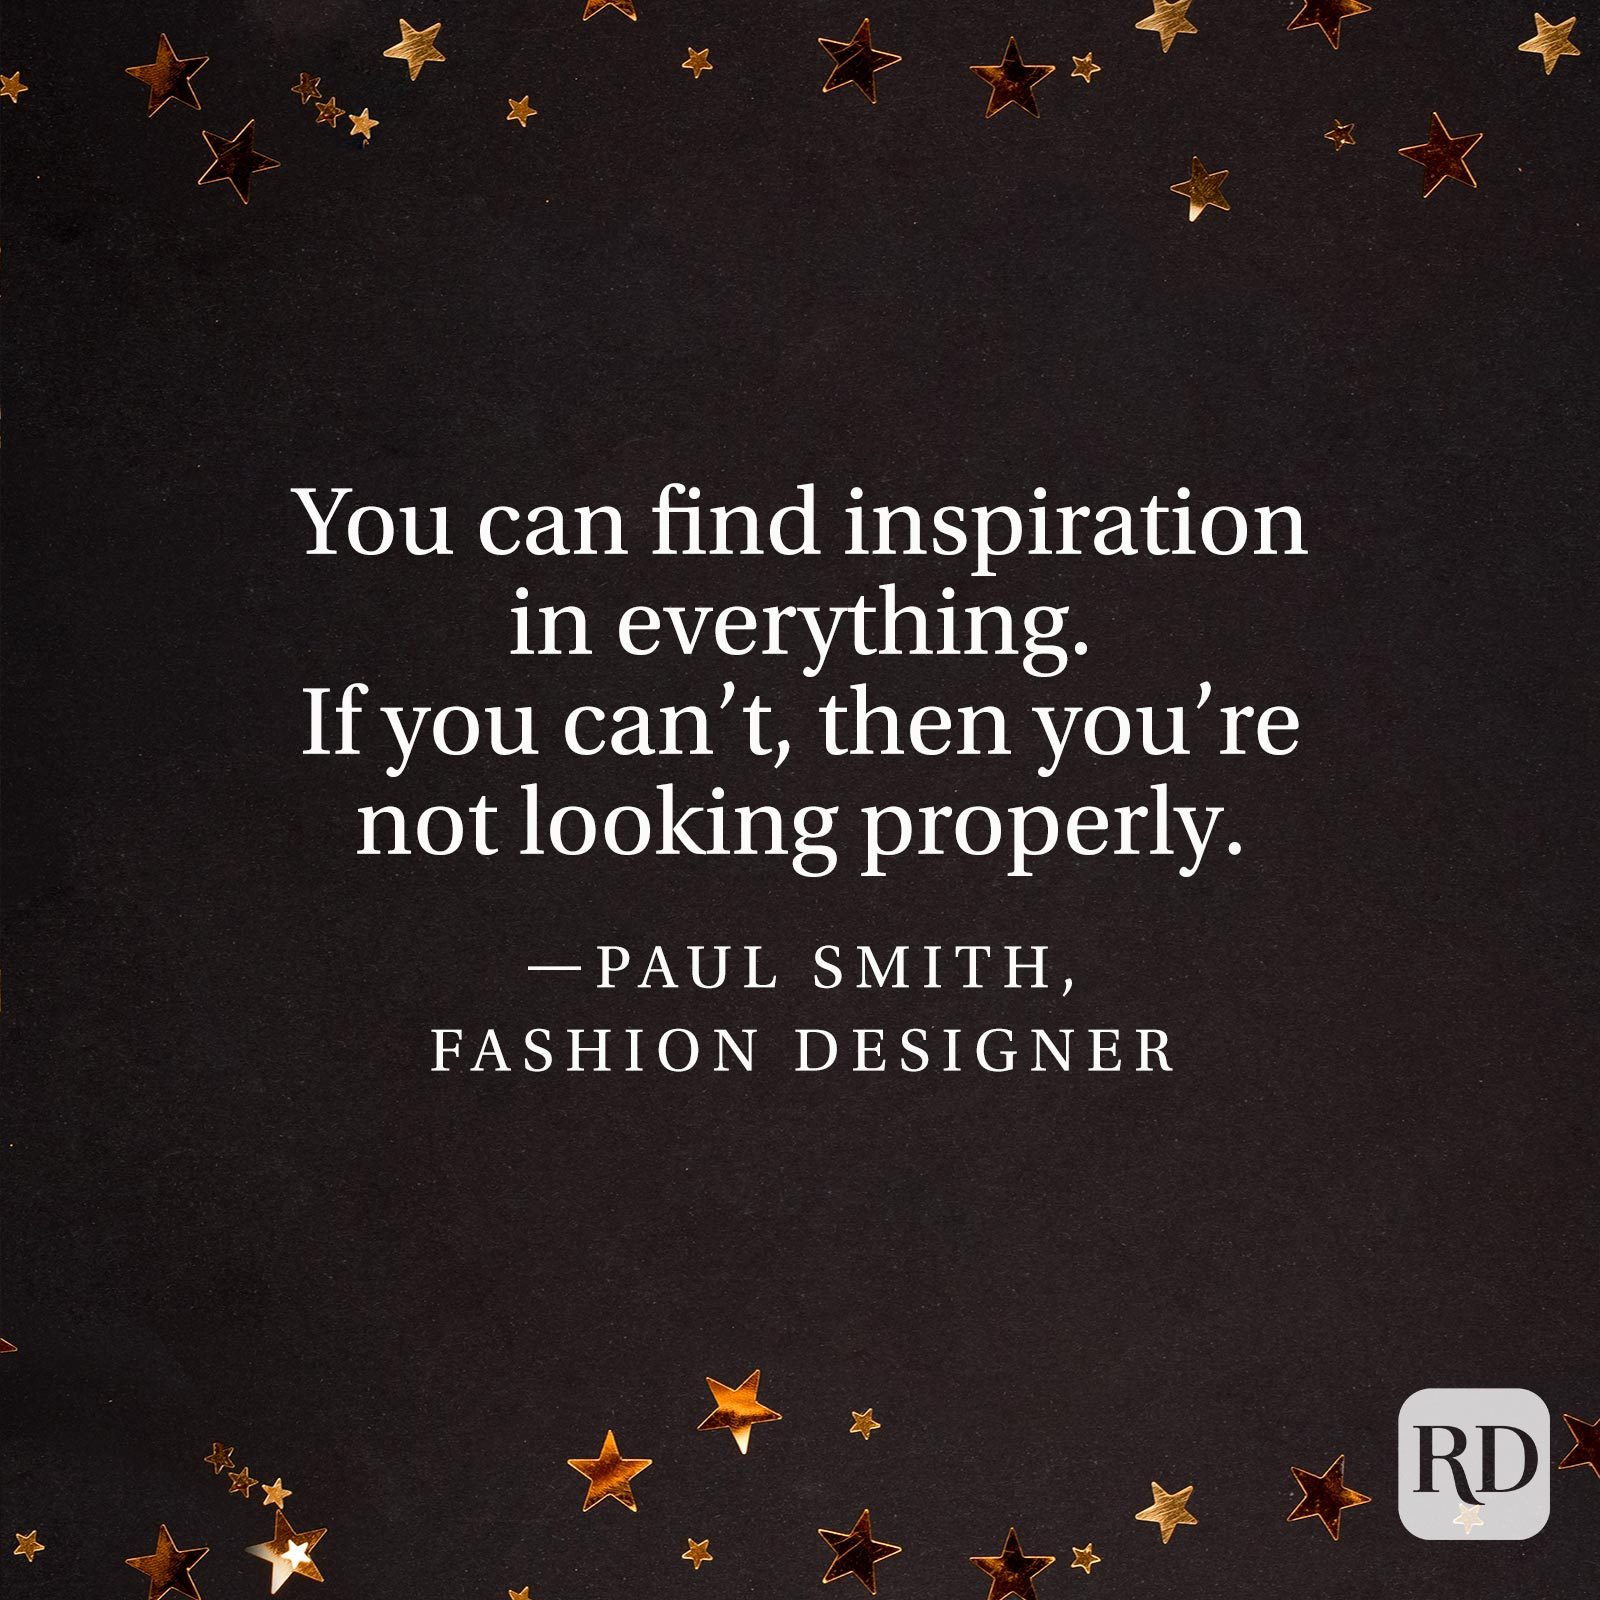 """You can find inspiration in everything. If you can't, then you're not looking properly.""—Paul Smith, fashion designer."